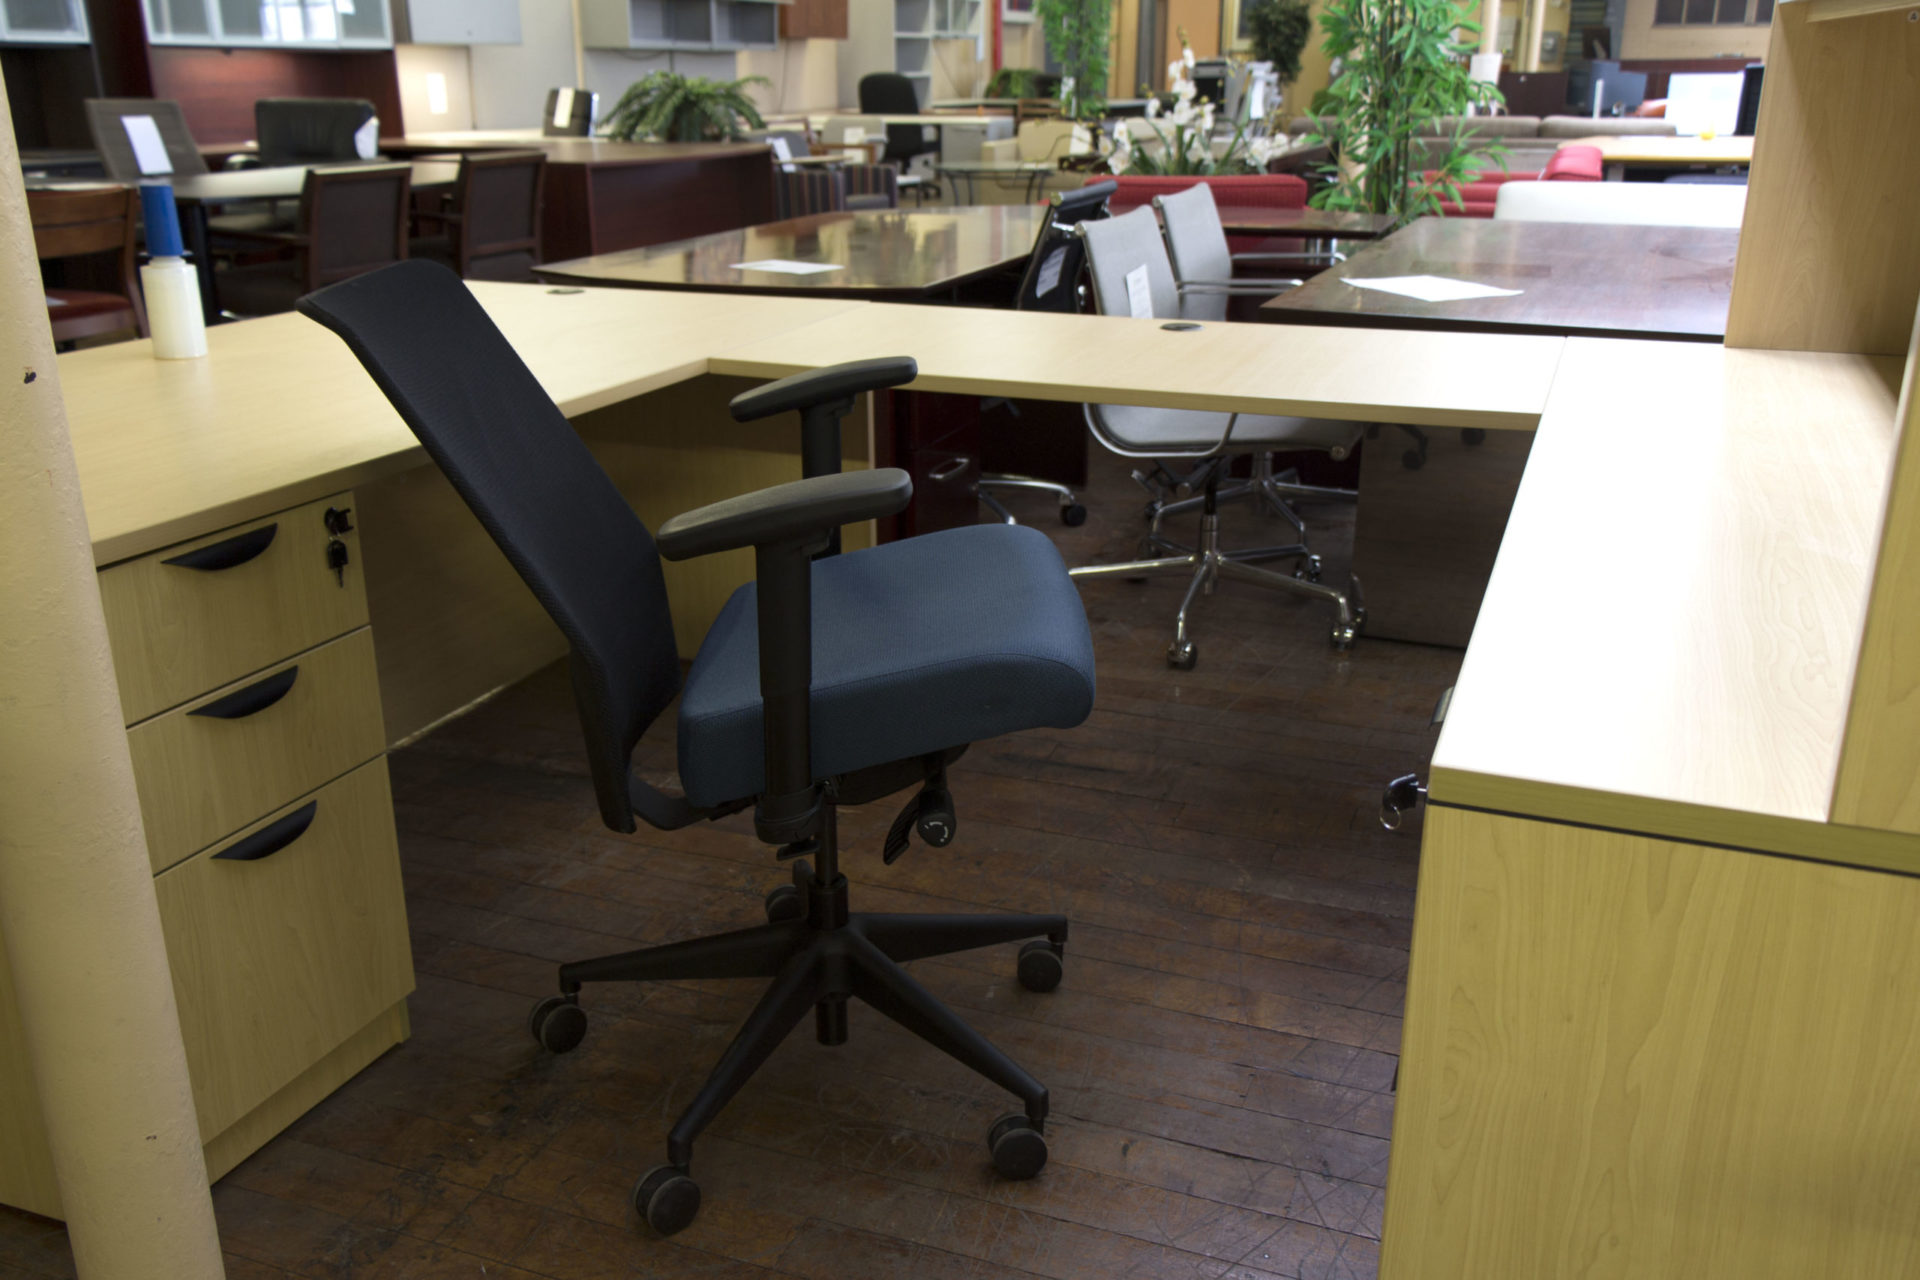 peartreeofficefurniture_peartreeofficefurniture_mg_5532.jpg